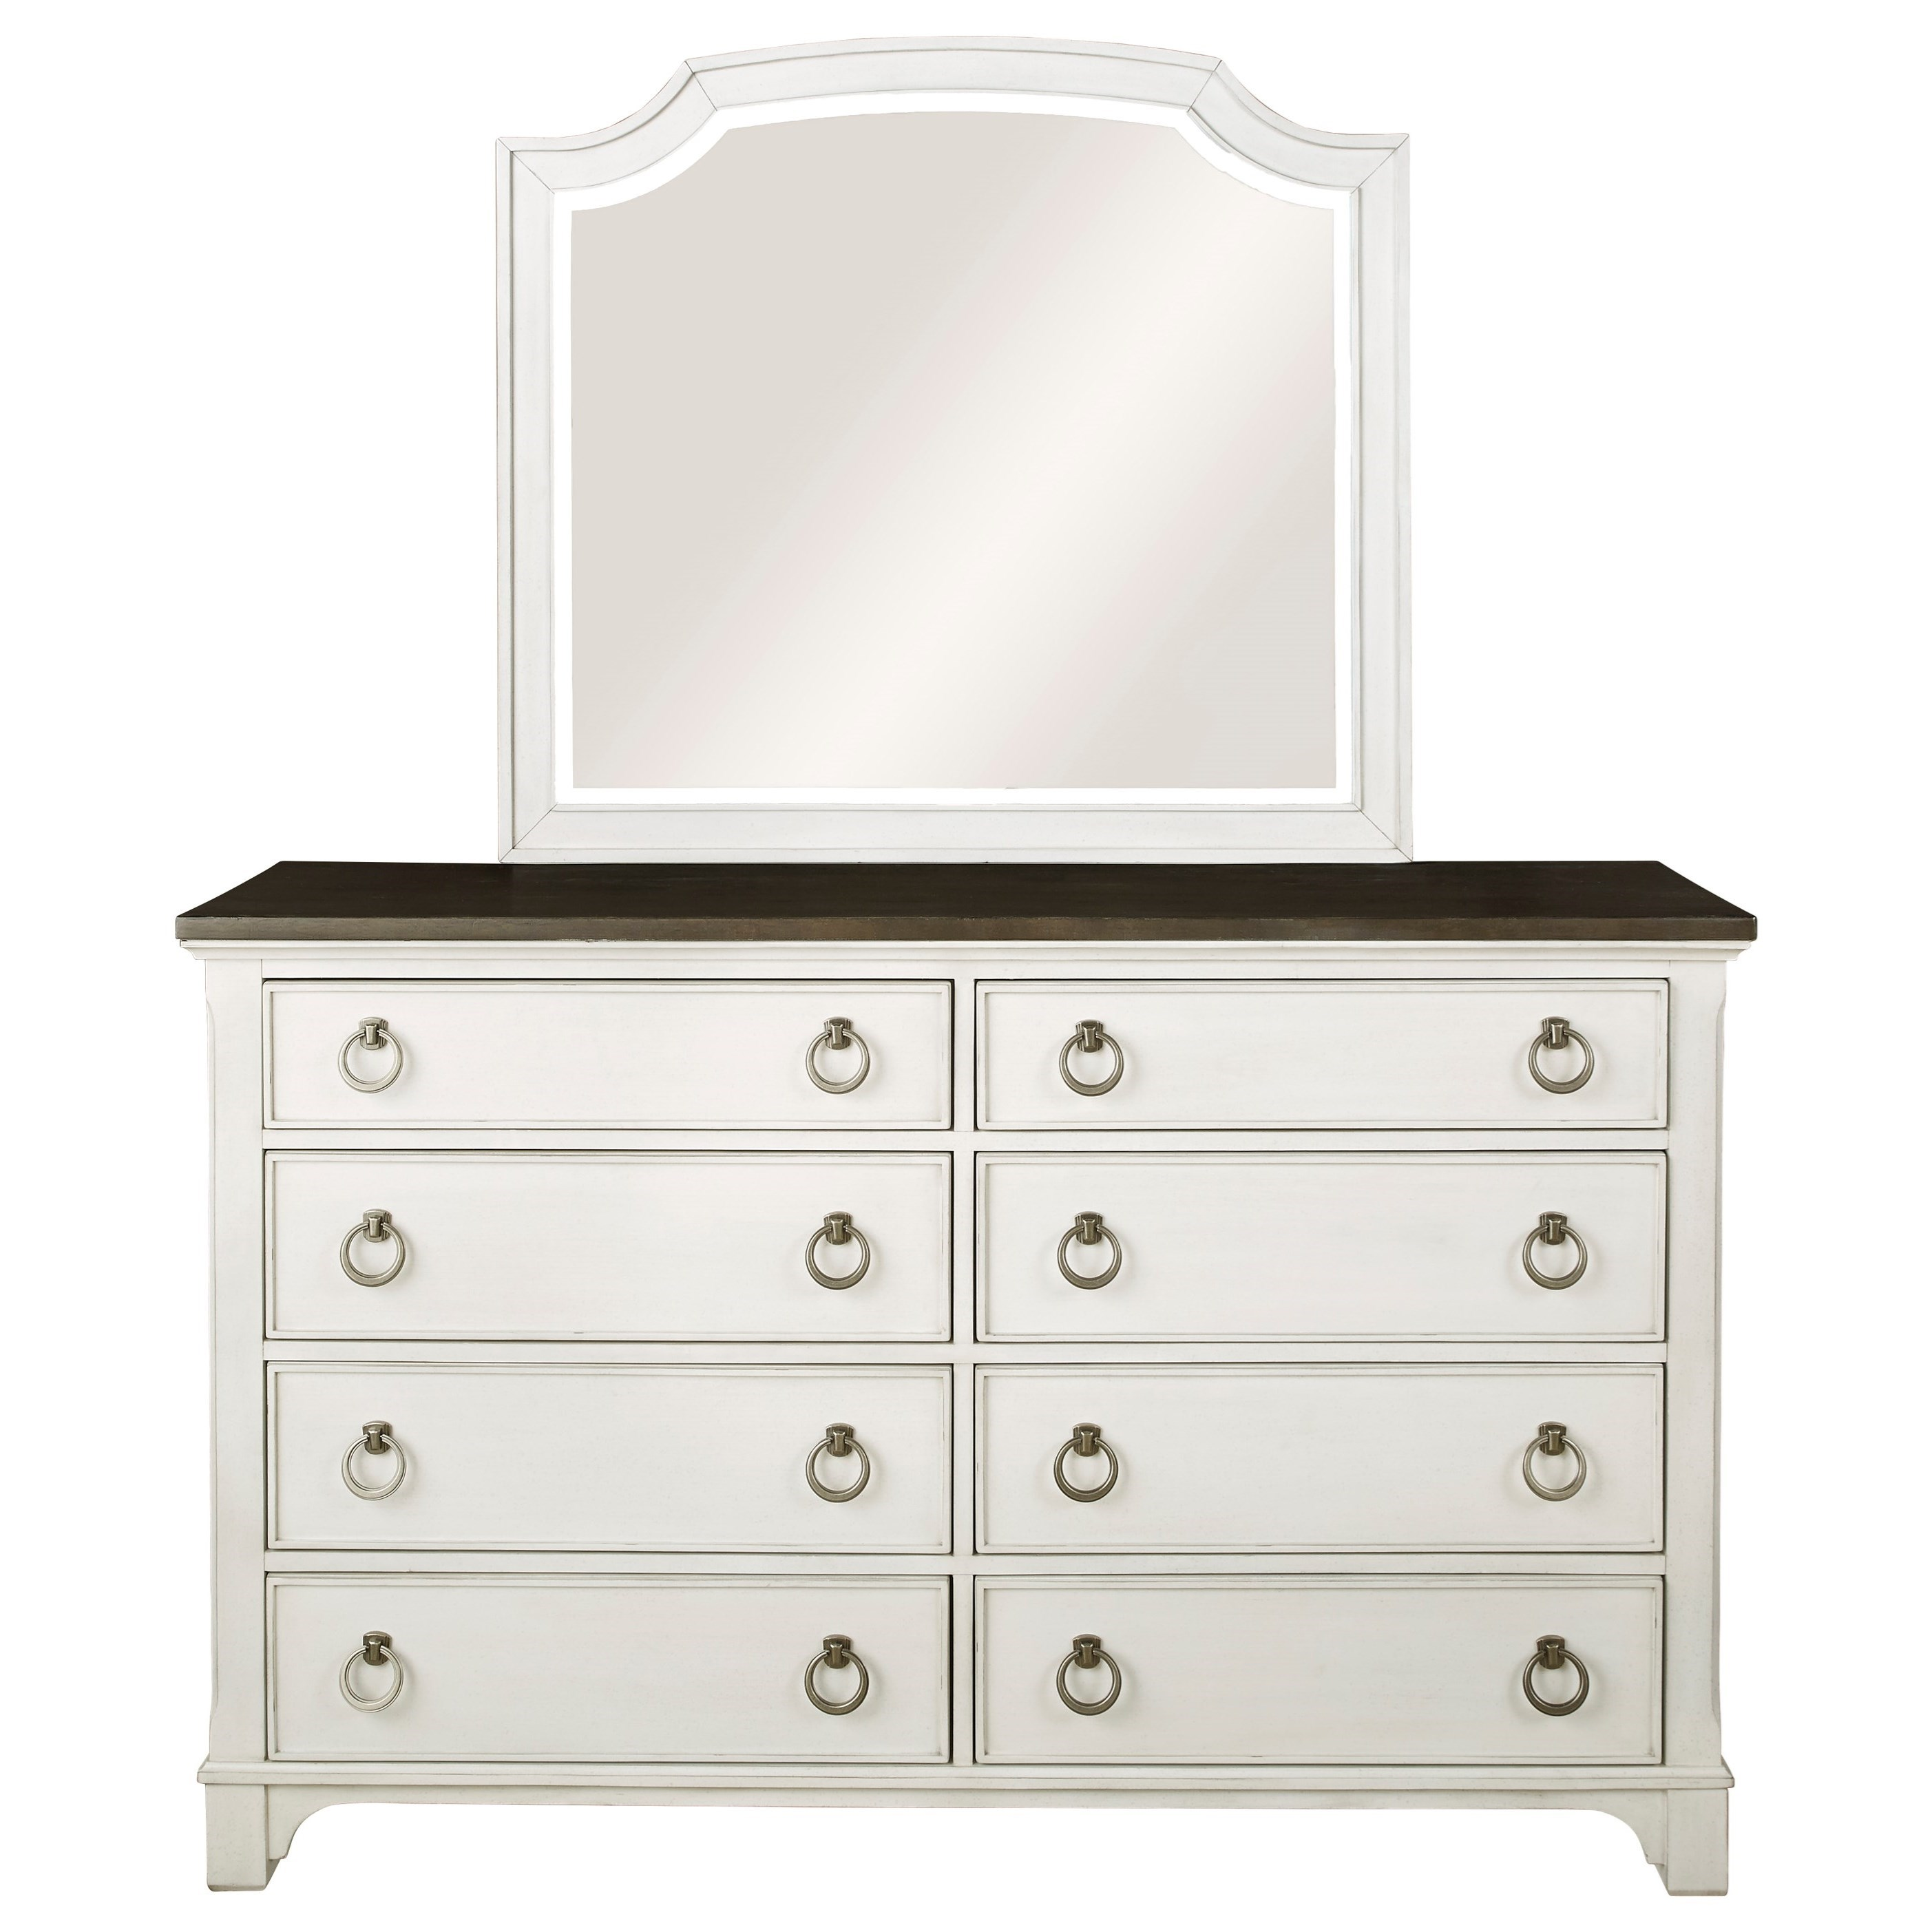 Nashbryn Dresser and Mirror Set by Benchcraft at Home Furnishings Direct